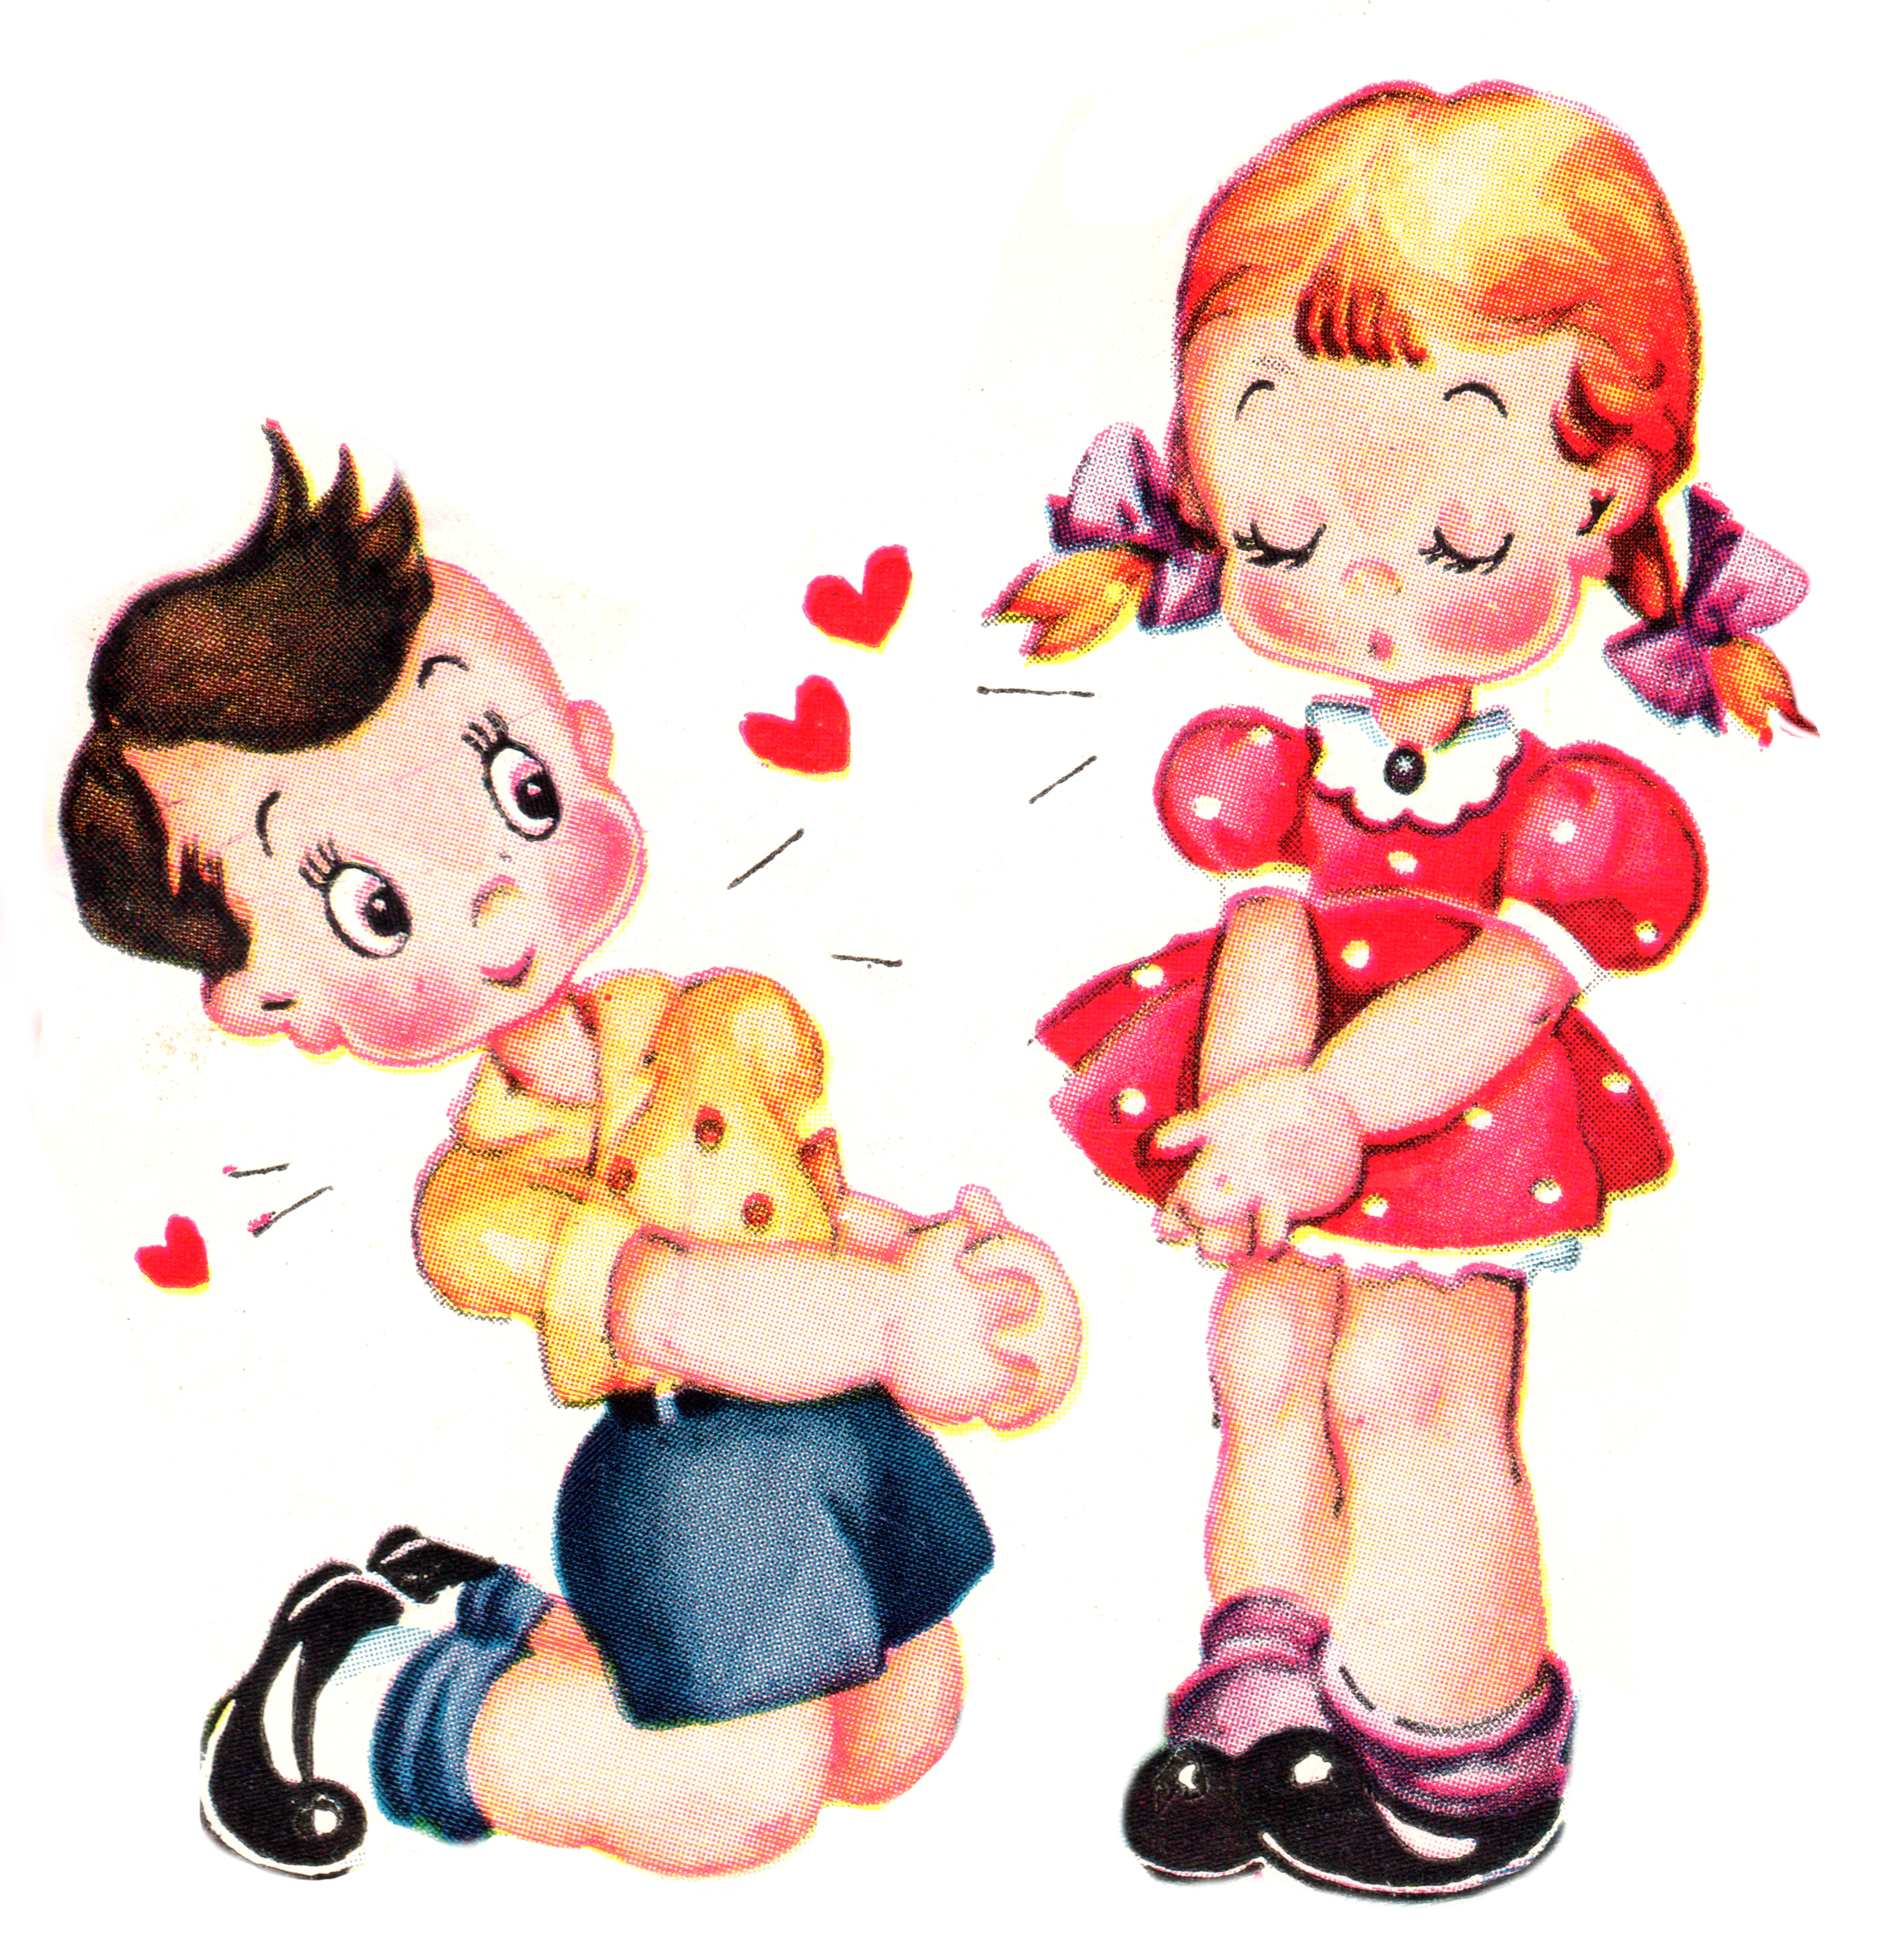 Cute Vintage Valentines Day Clip Art - Free Pretty Things For You - Free Printable Vintage Valentine Pictures